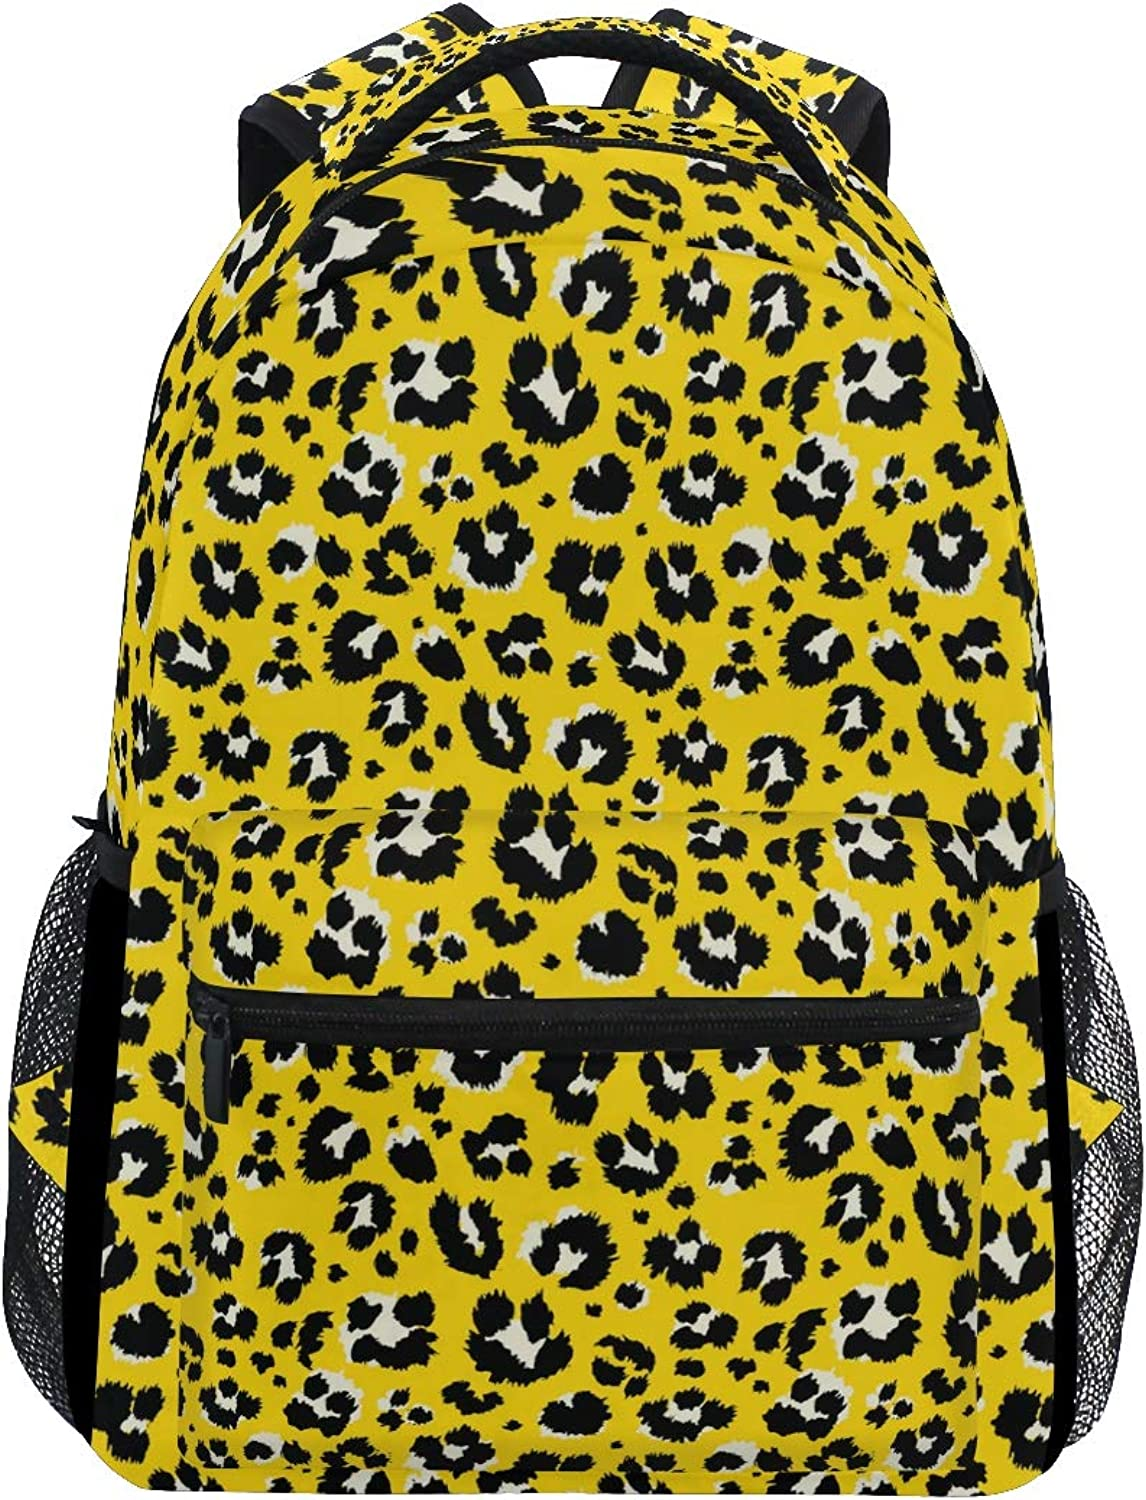 Fashion Noble Leopard Print Pattern Large Backpack Travel Outdoor Sports Laptop Backpack for Women & Men College School Water Resistant